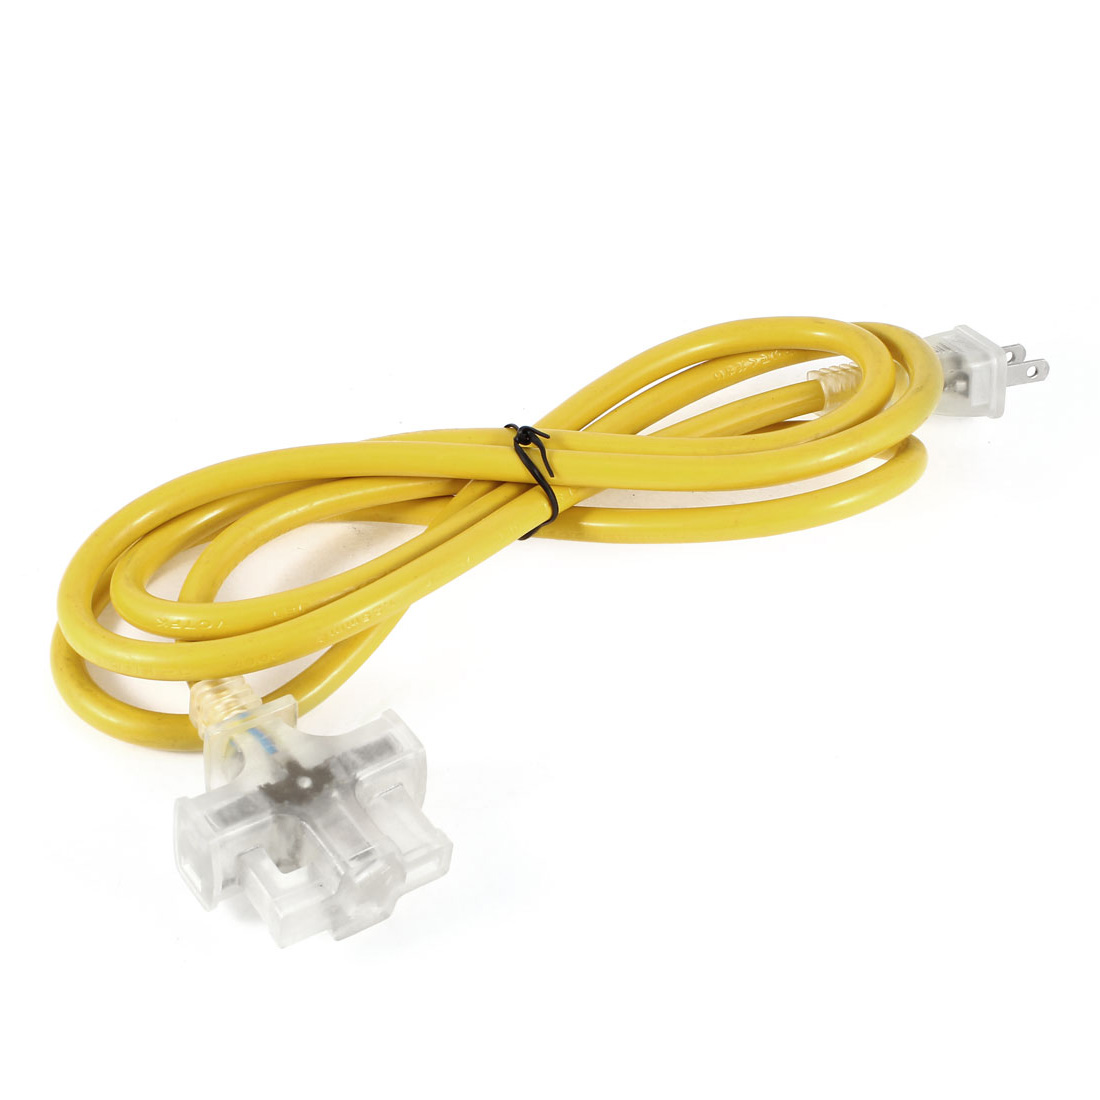 Yellow 6.6Ft Cable AU US Socket 3 Outlet Power Splitter AC 125V 15A US Plug